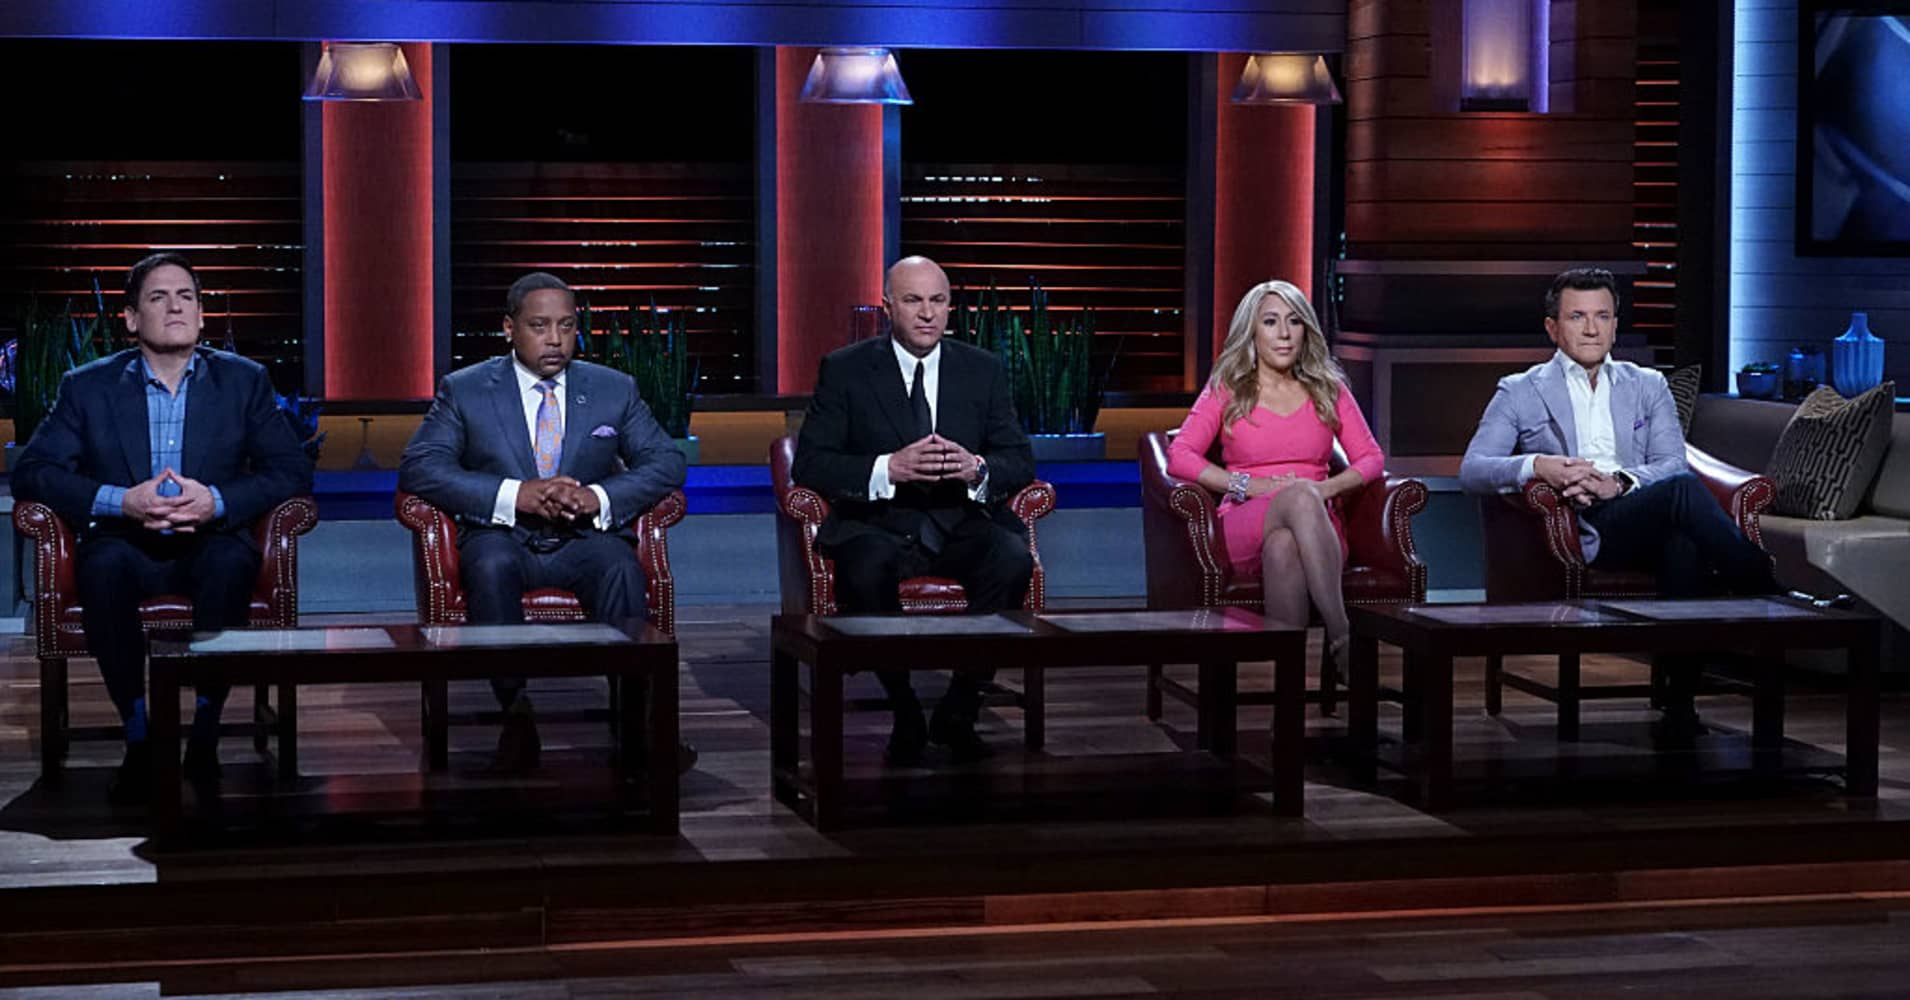 Fullsize Of Most Successful Shark Tank Products